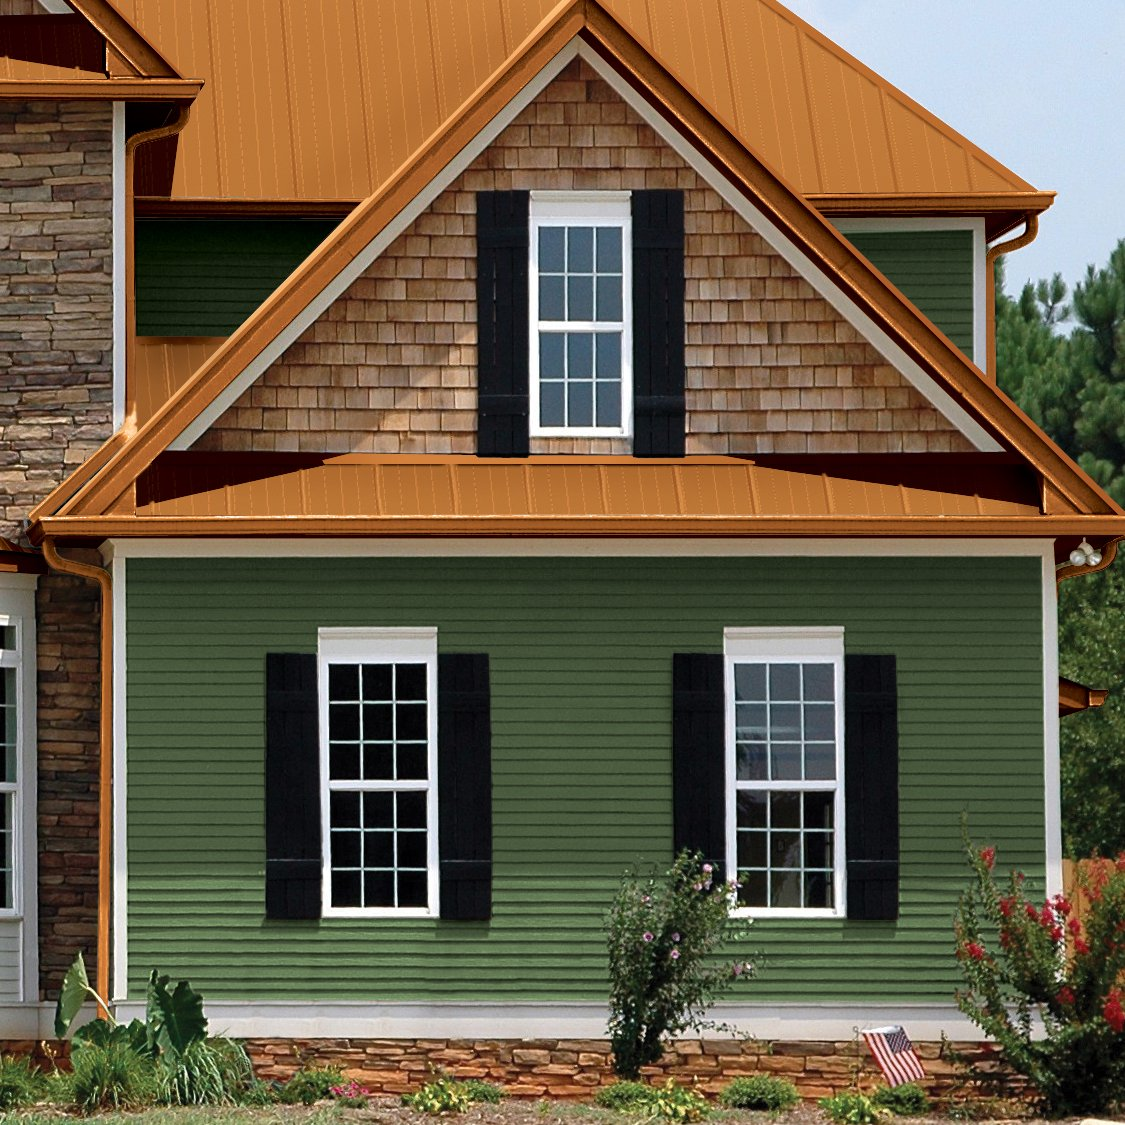 House Siding Installation And Repair Services In Hudson Florida